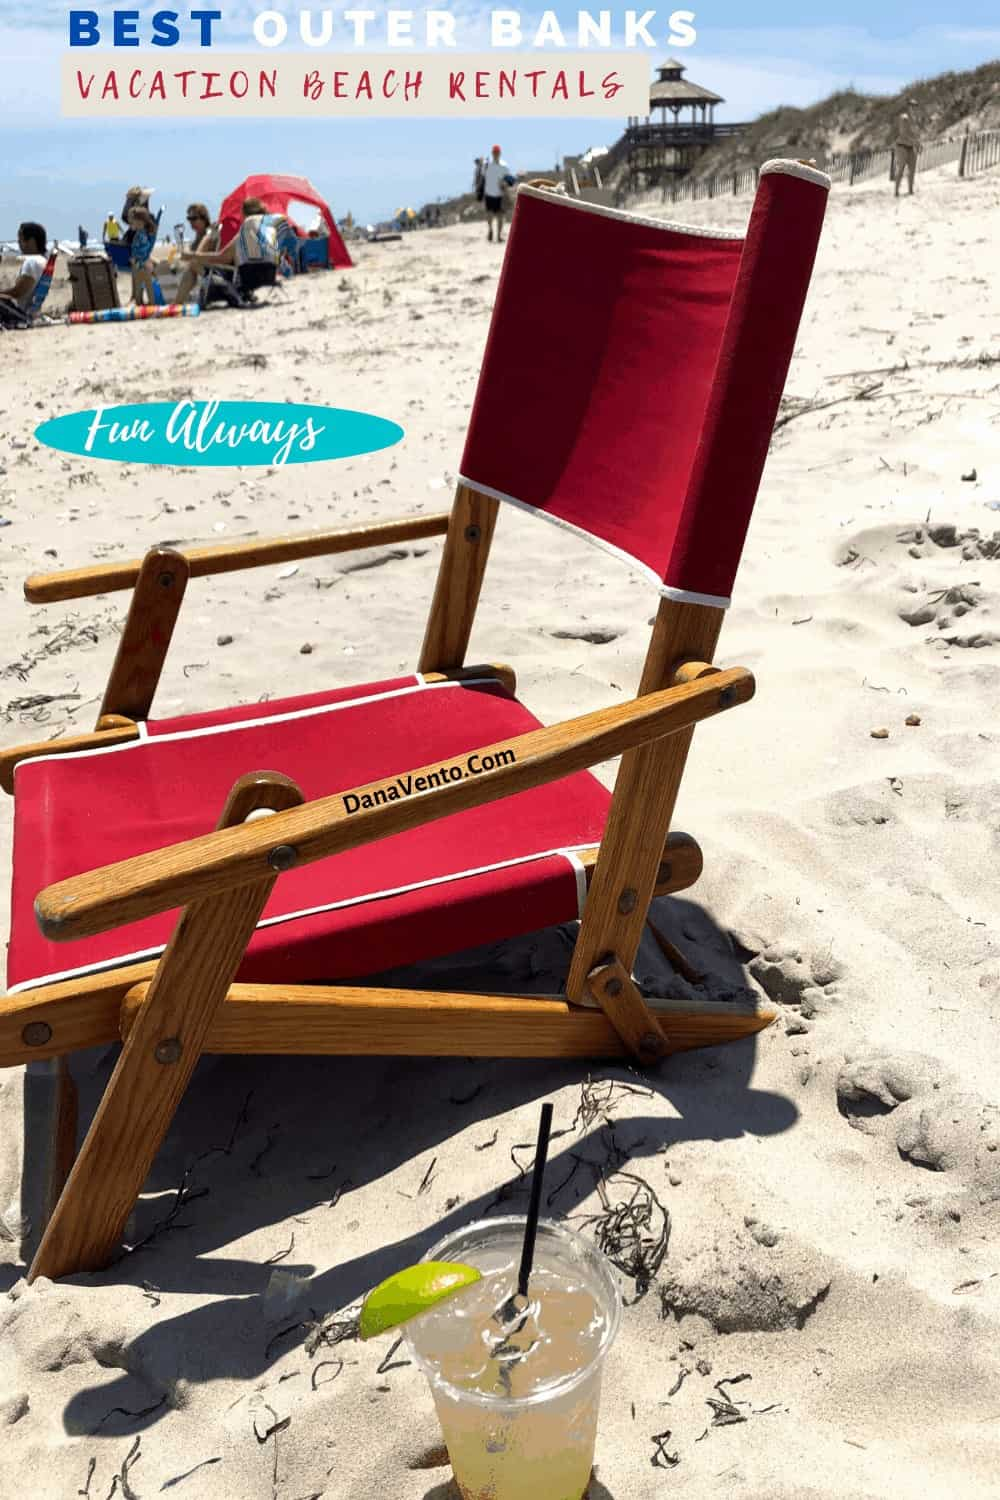 Beach Chair from Brindley Vacation Rentals